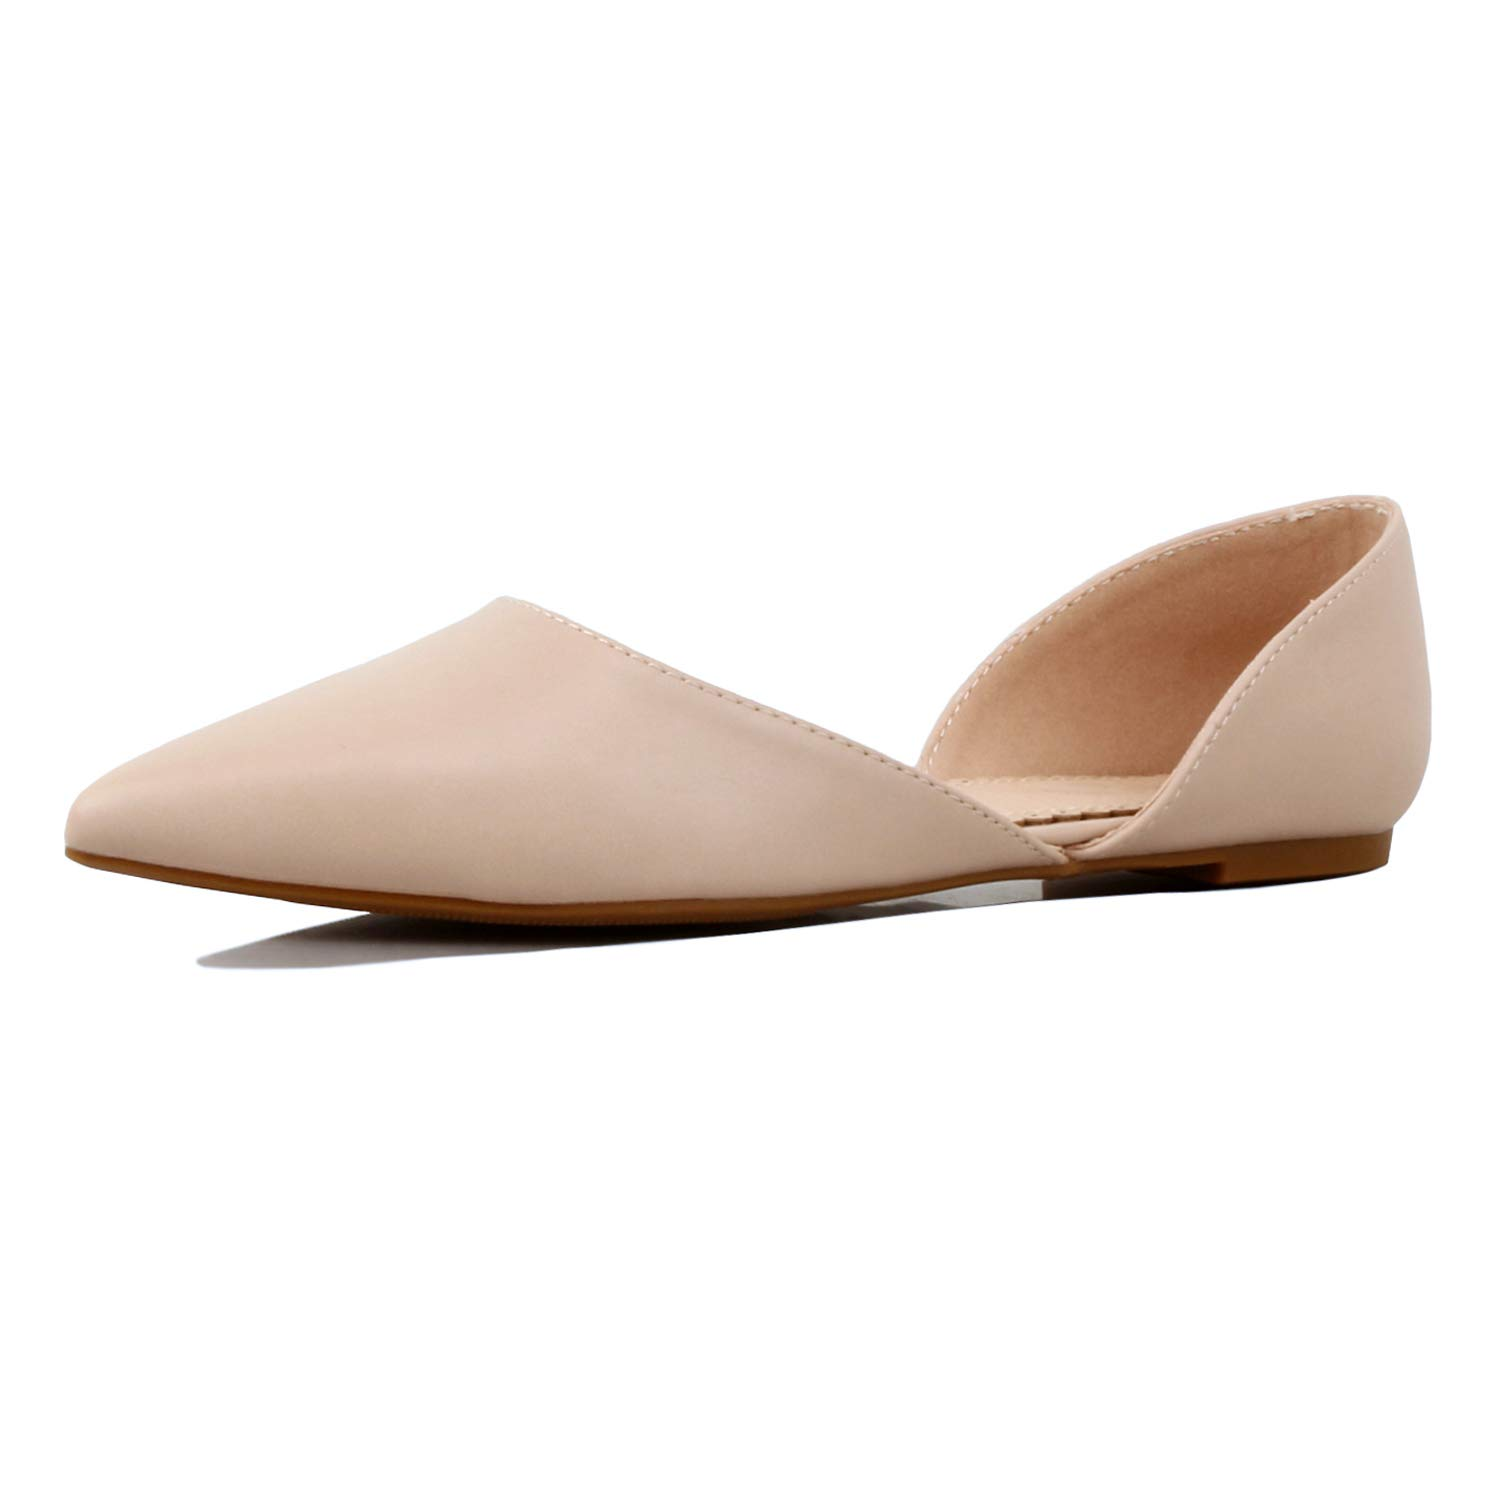 01 Natural Pu Guilty Heart Womens D'Orsay Almond Pointed Toe Slip On Casual Flats